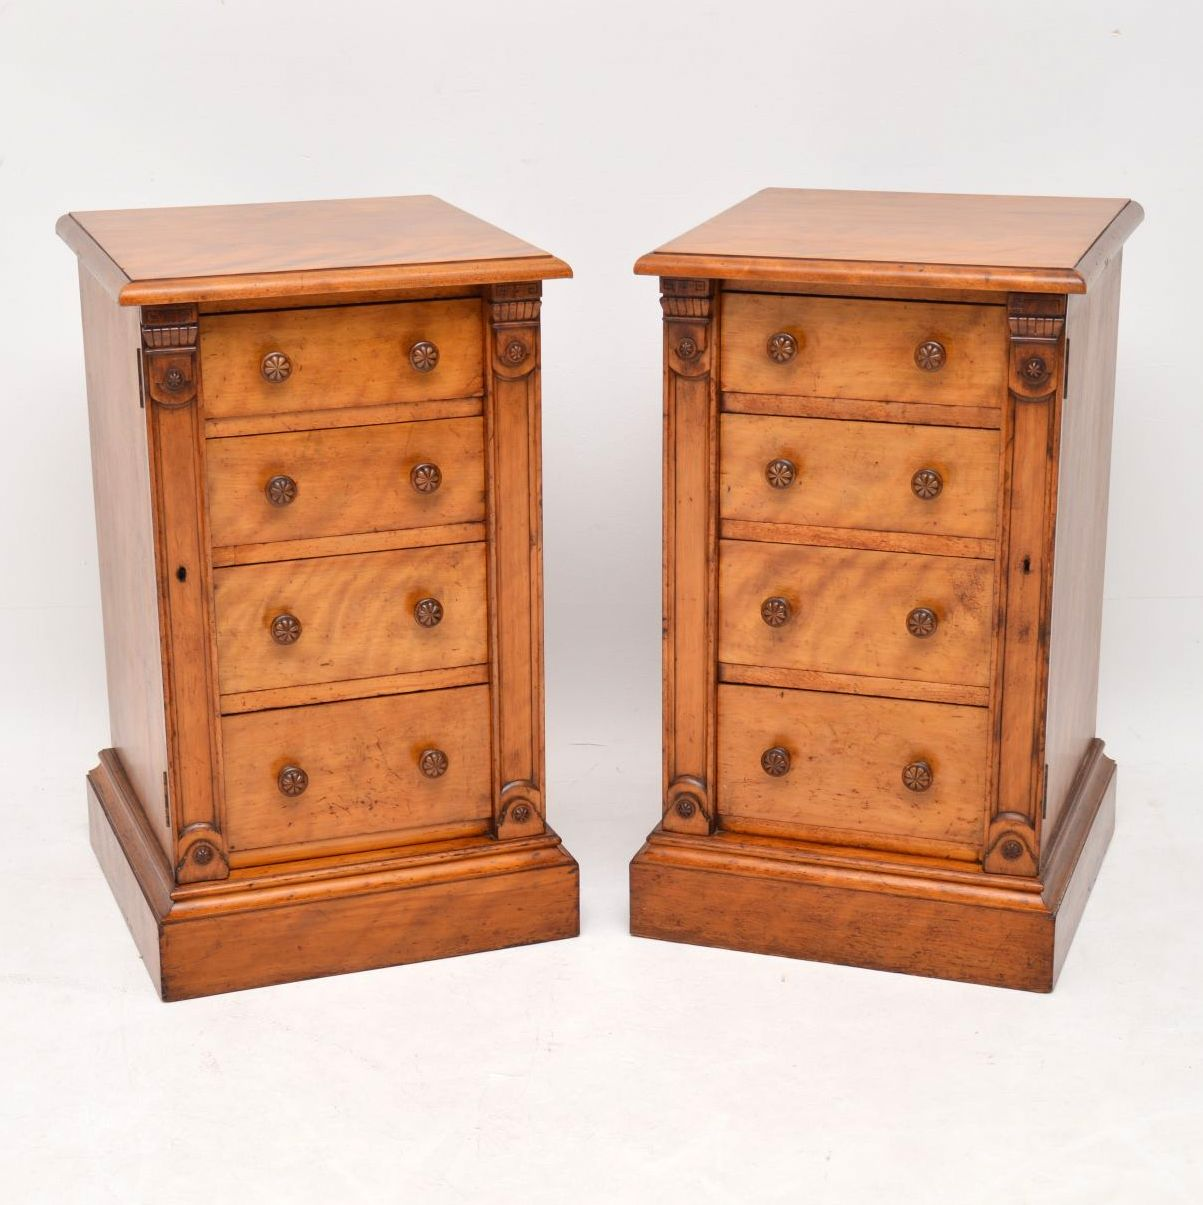 Pair of Antique Victorian Satinwood Wellington Bedside Chests